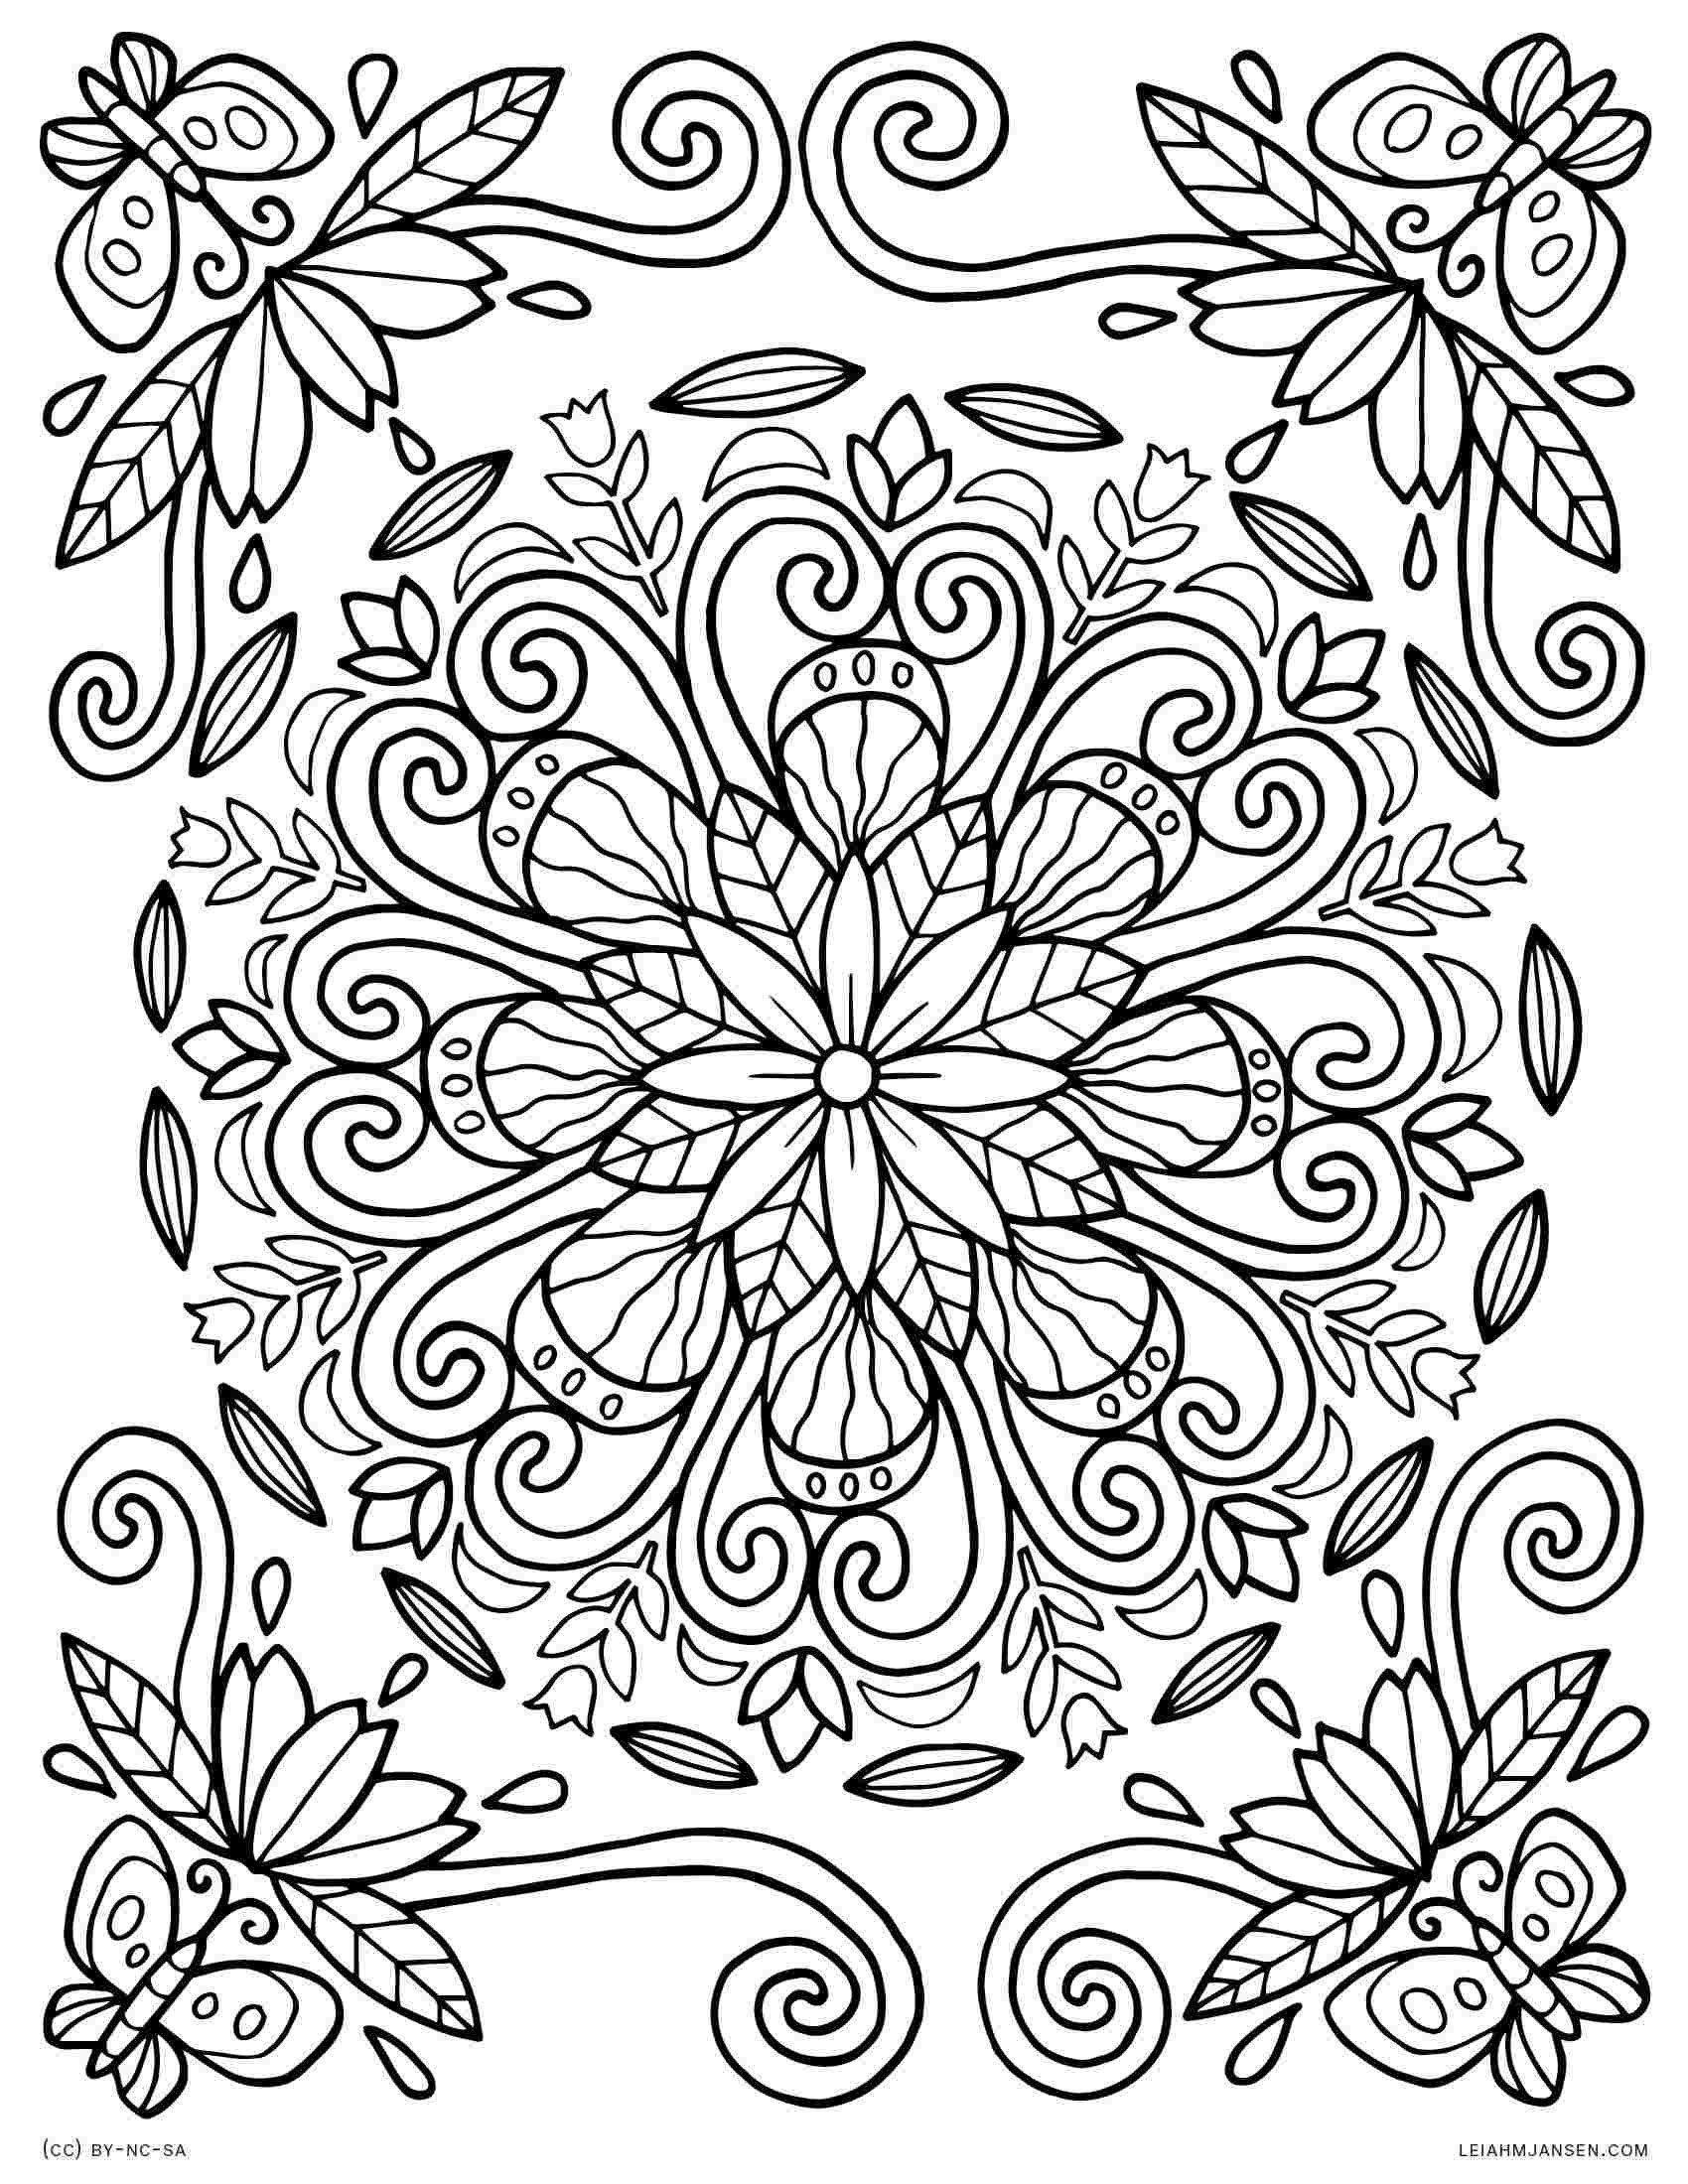 Large Mandala Coloring Pages Page Coloring Advanceddala Coloring Pages Free Printable Mandala Coloring Pages Abstract Coloring Pages Spring Coloring Pages